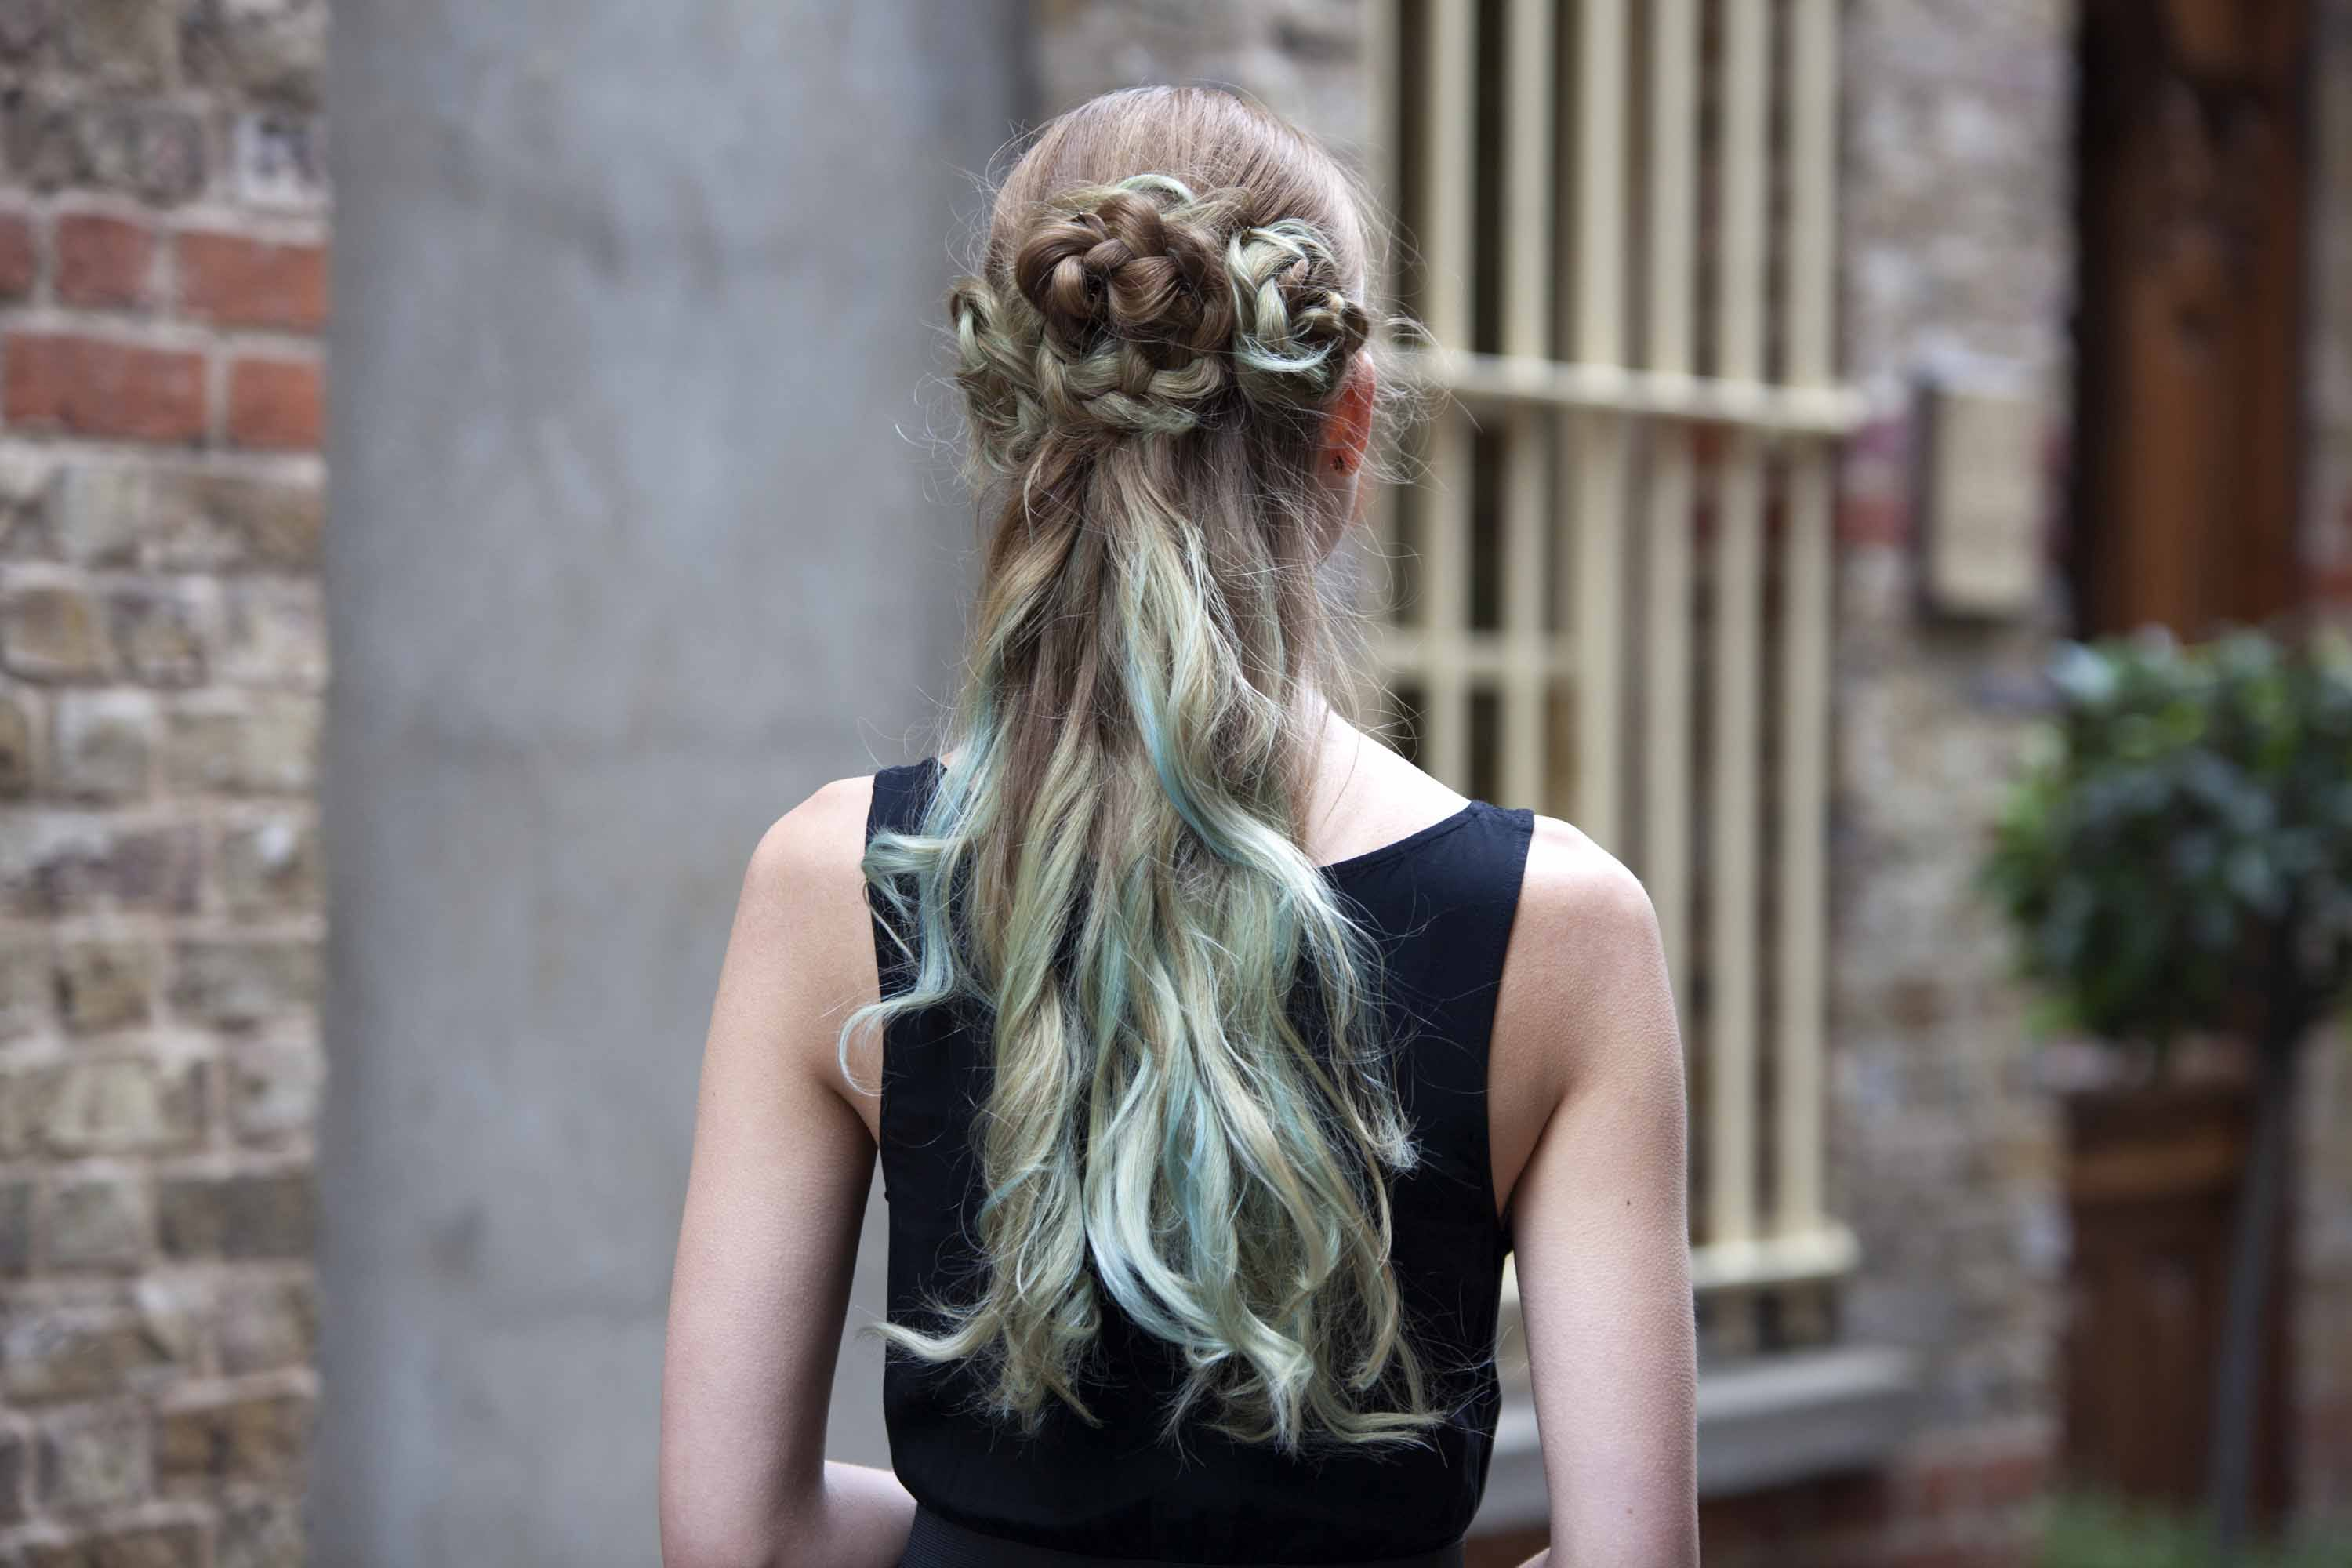 10 Ways Prom Hairstyles 2018 For Women -A Quick Hair Guide 1